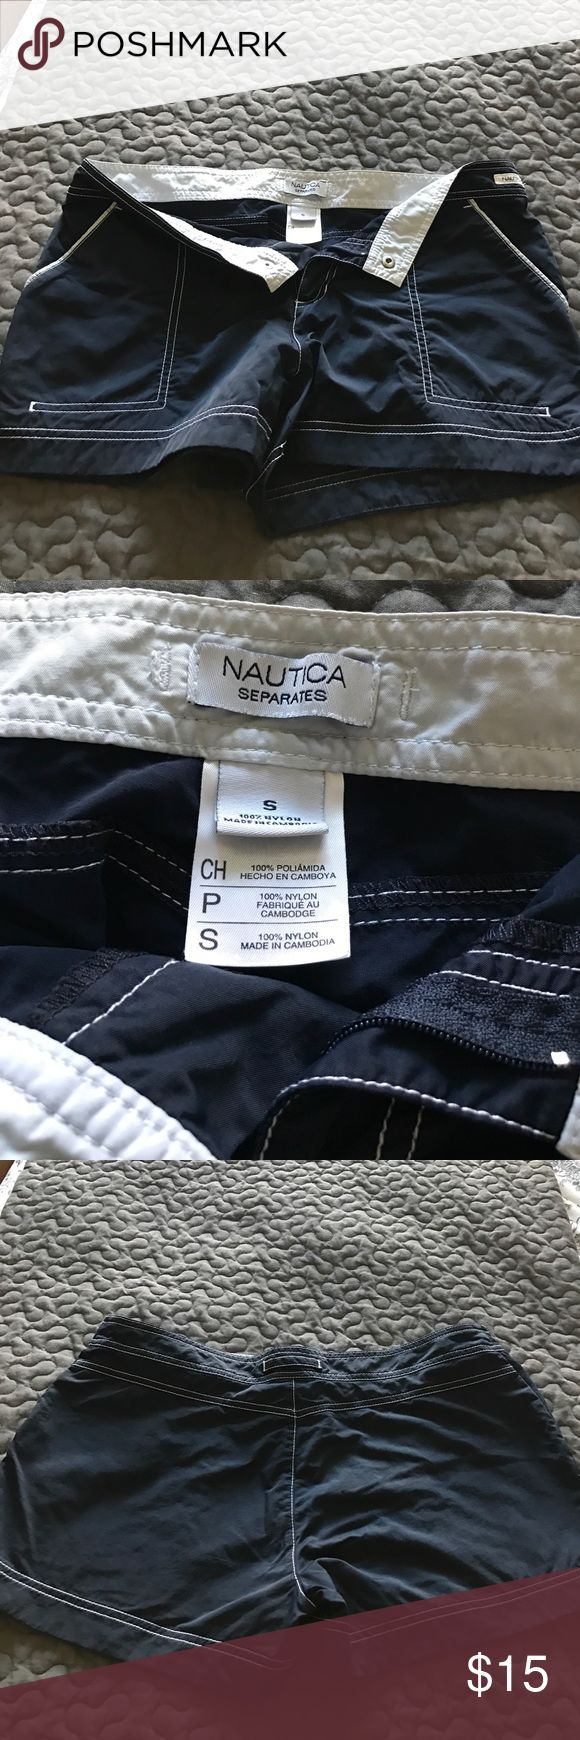 Nautical women's board shorts size small Nautical women's swim board shorts - dark blue and white trim.  Size small. Nautica Swim